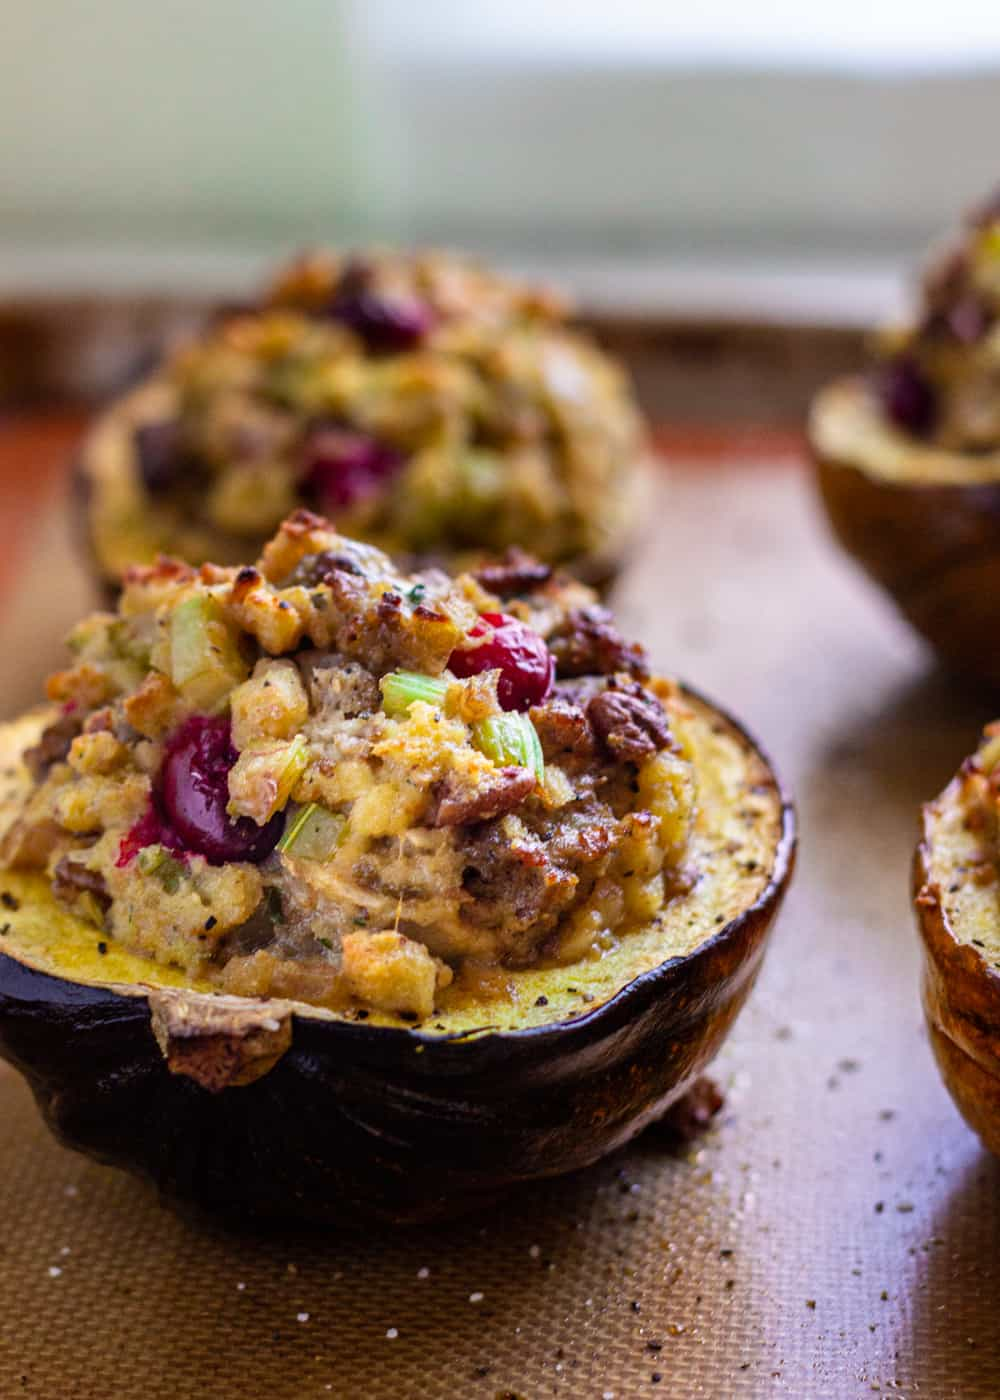 savory stuffed squash with sausage and cranberry stuffing